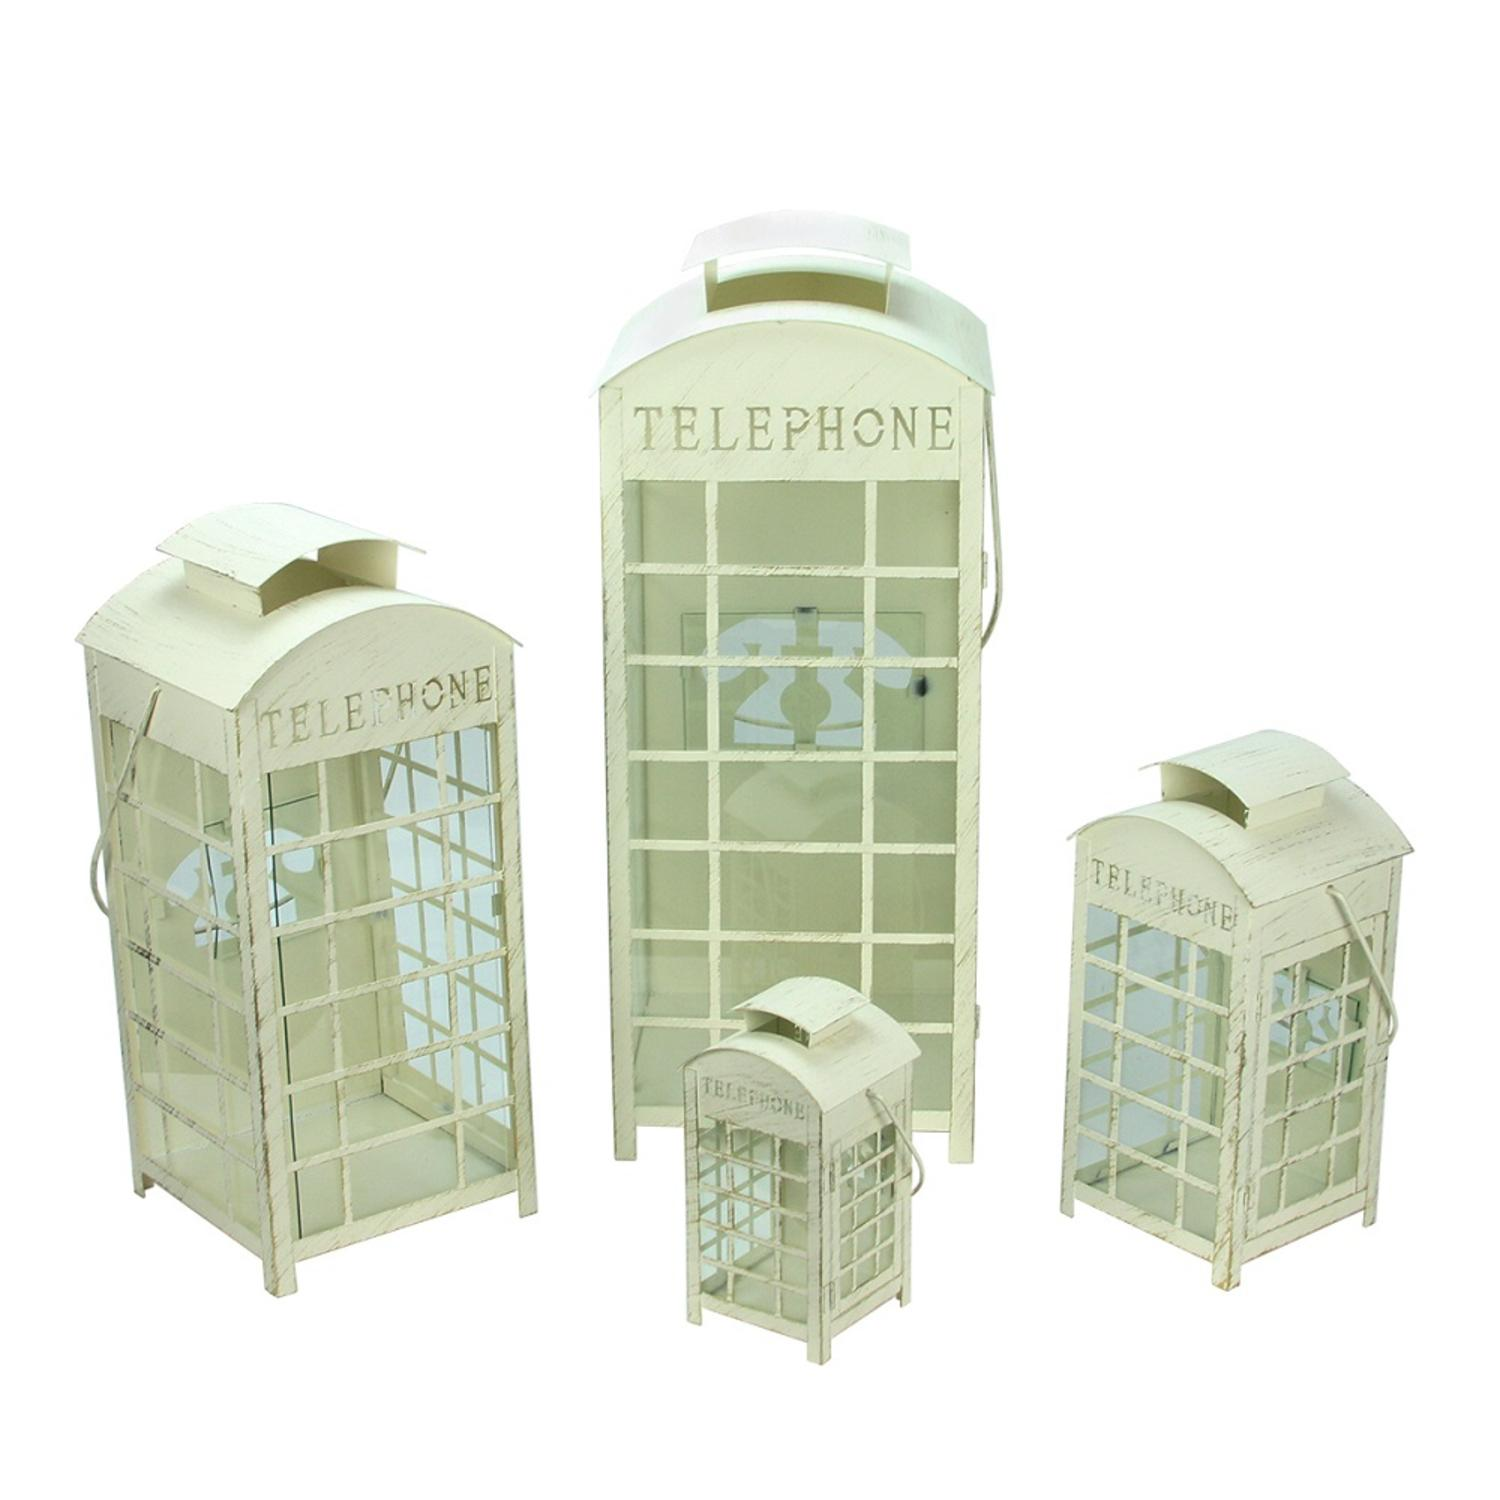 ''Set of 4 Weathered Cream and Gold TELEPHONE Booth Glass Pillar Candle Lanterns 8.75'''' - 25''''''